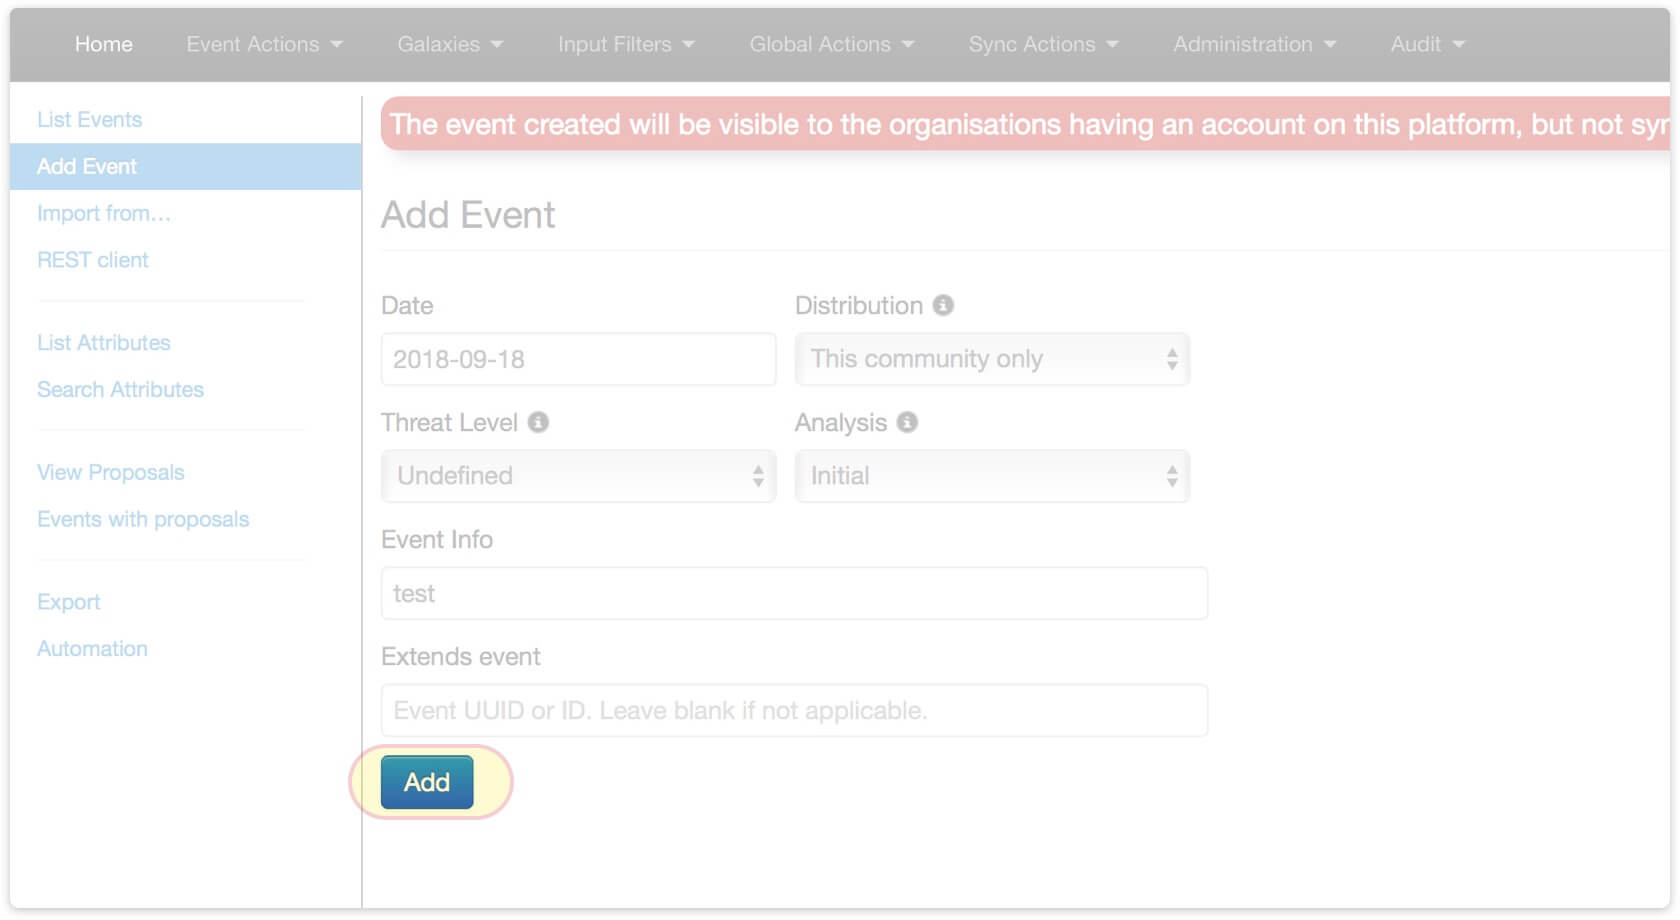 Go to Event Actions > Add Event and create an event